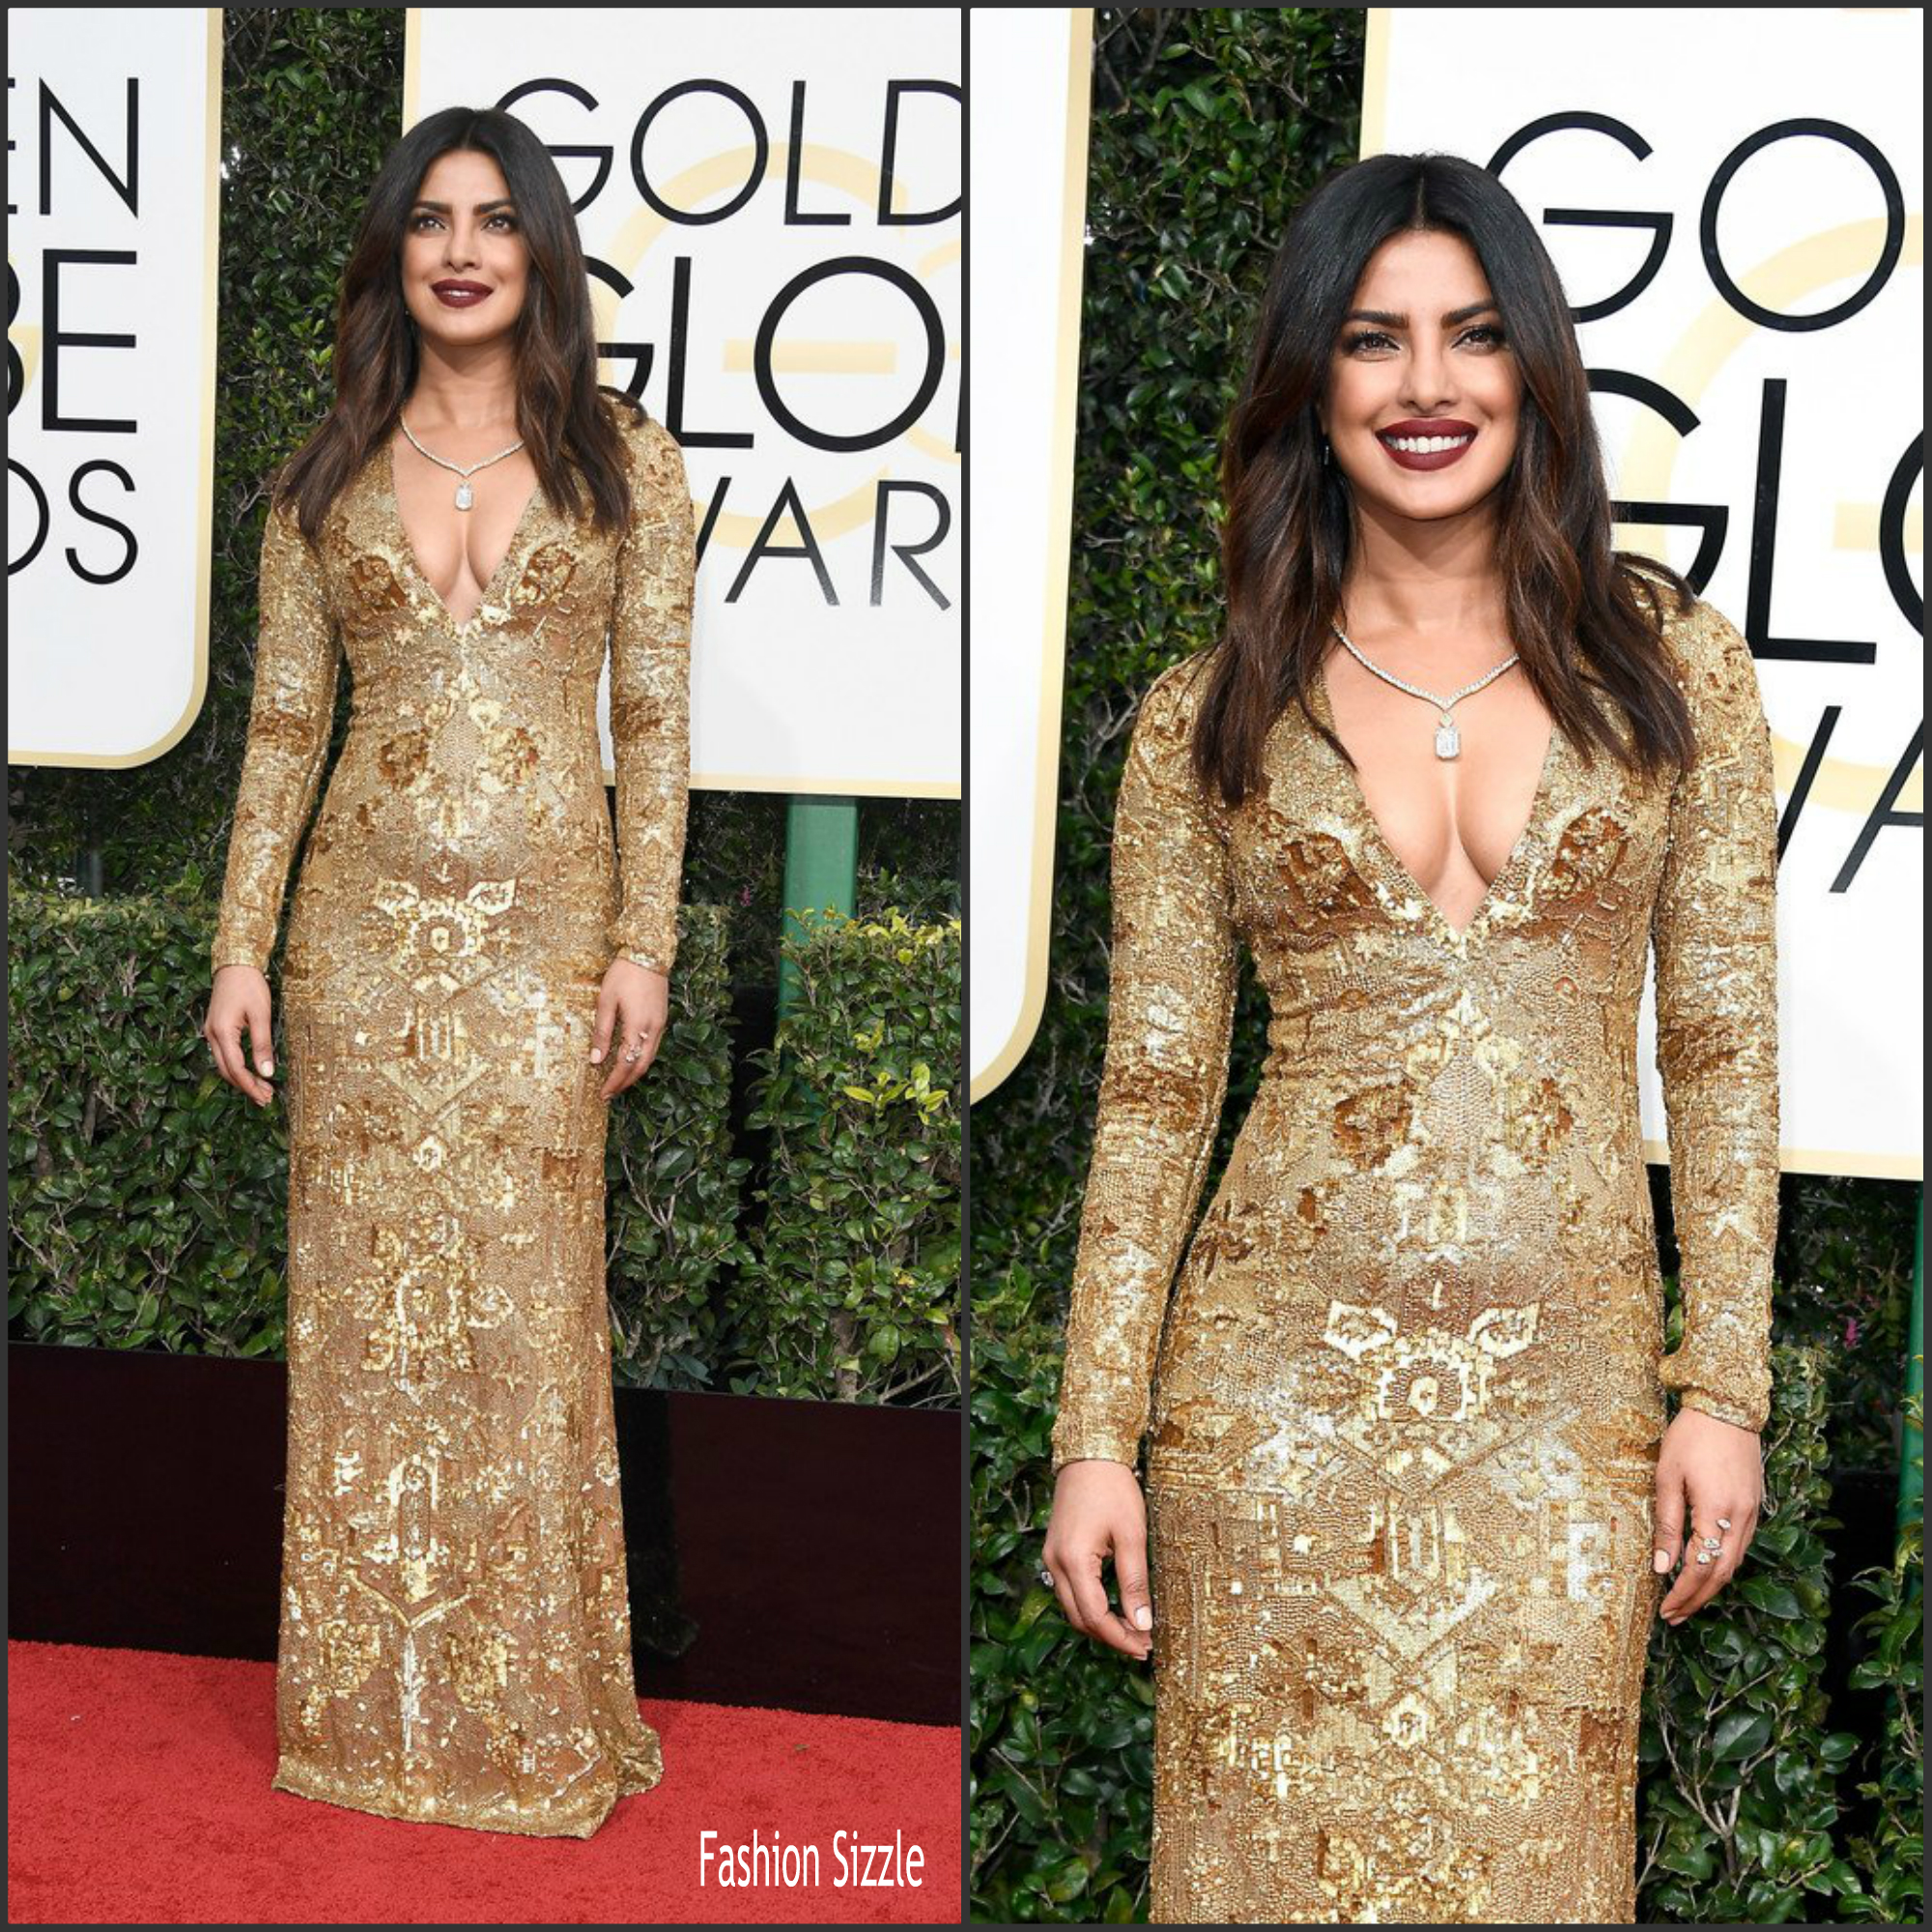 priyanka-chopra-in-ralph-lauren-at-the-2017-golden-globe-awards